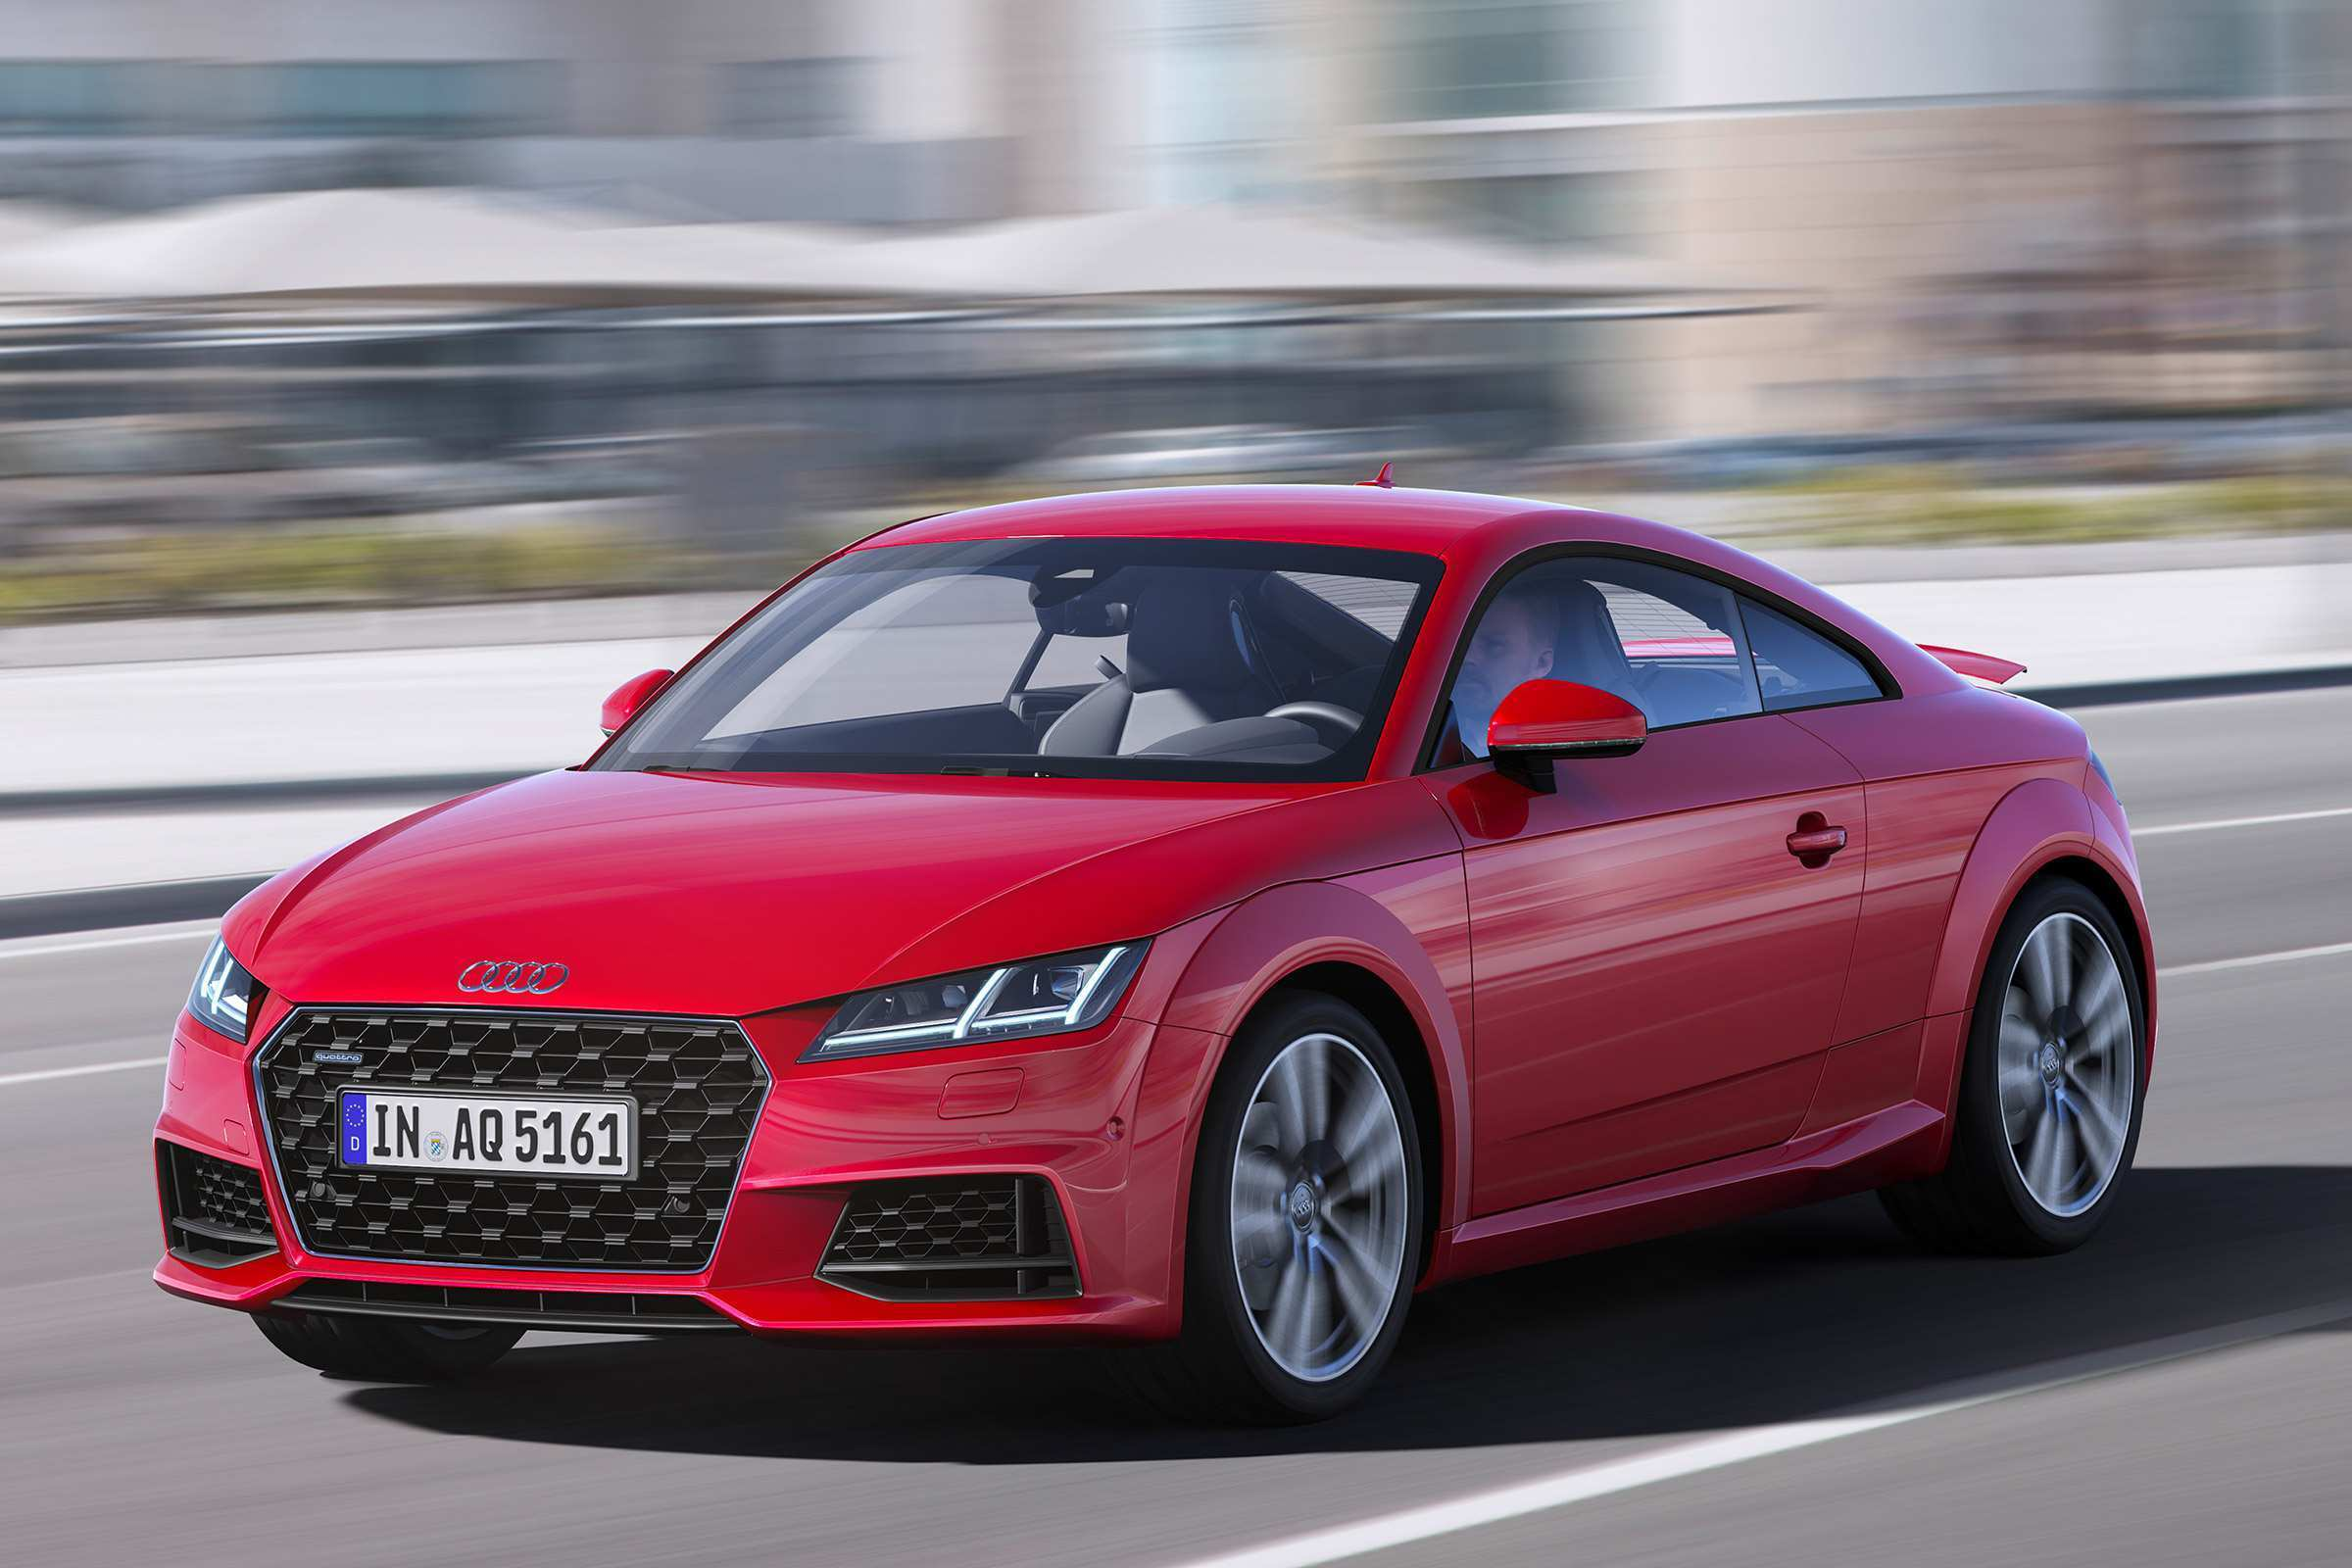 85 New New Audi Tt Rs Plus 2019 Price And Review Prices for New Audi Tt Rs Plus 2019 Price And Review